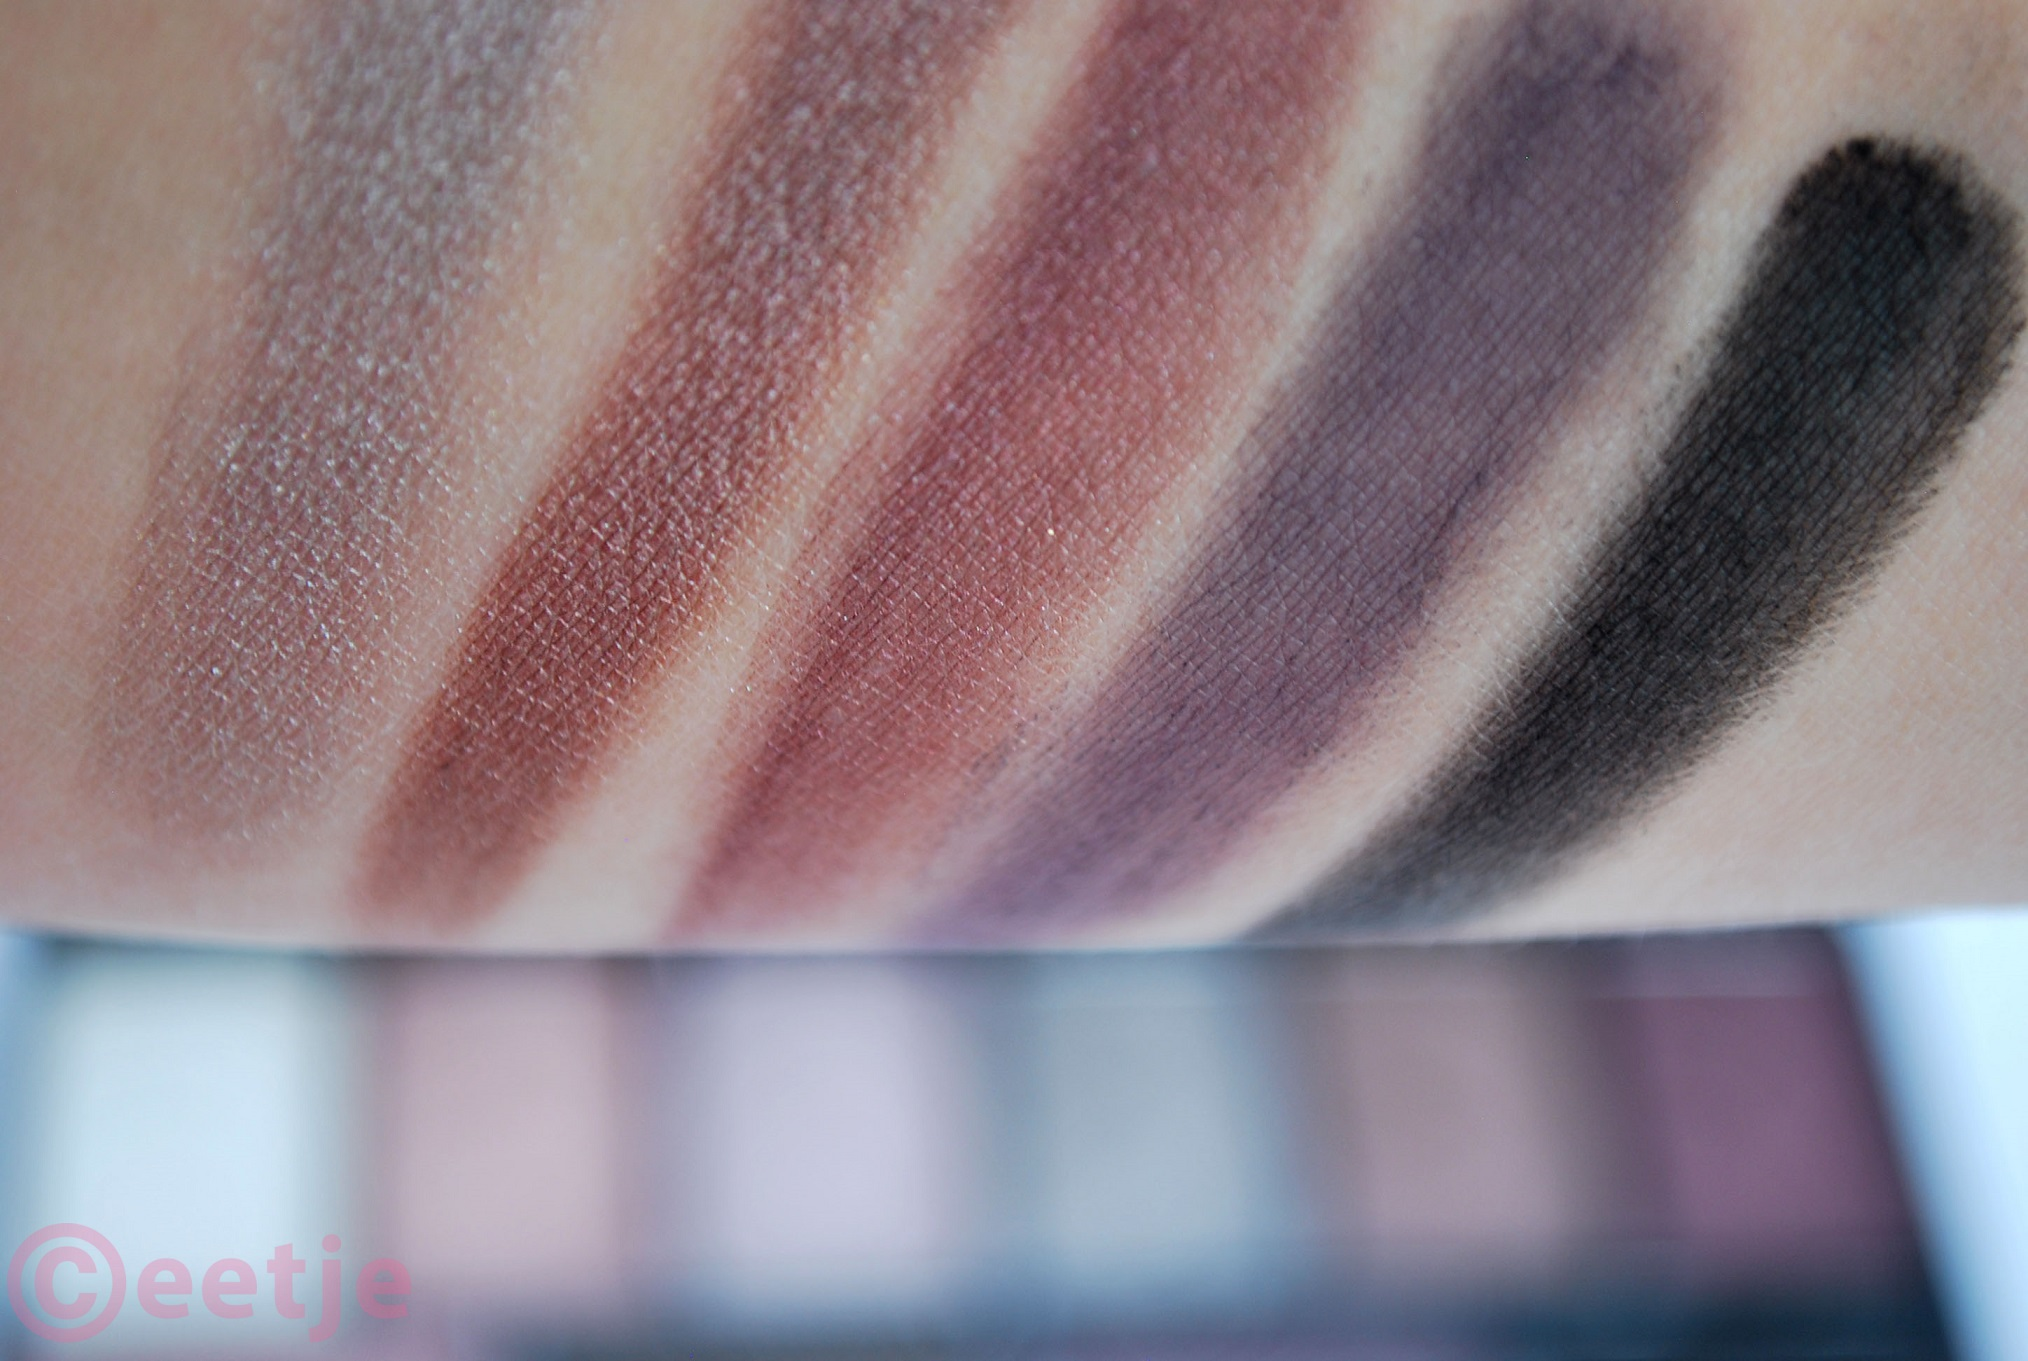 Swatch MUA pretty edgy eyeshadow palette